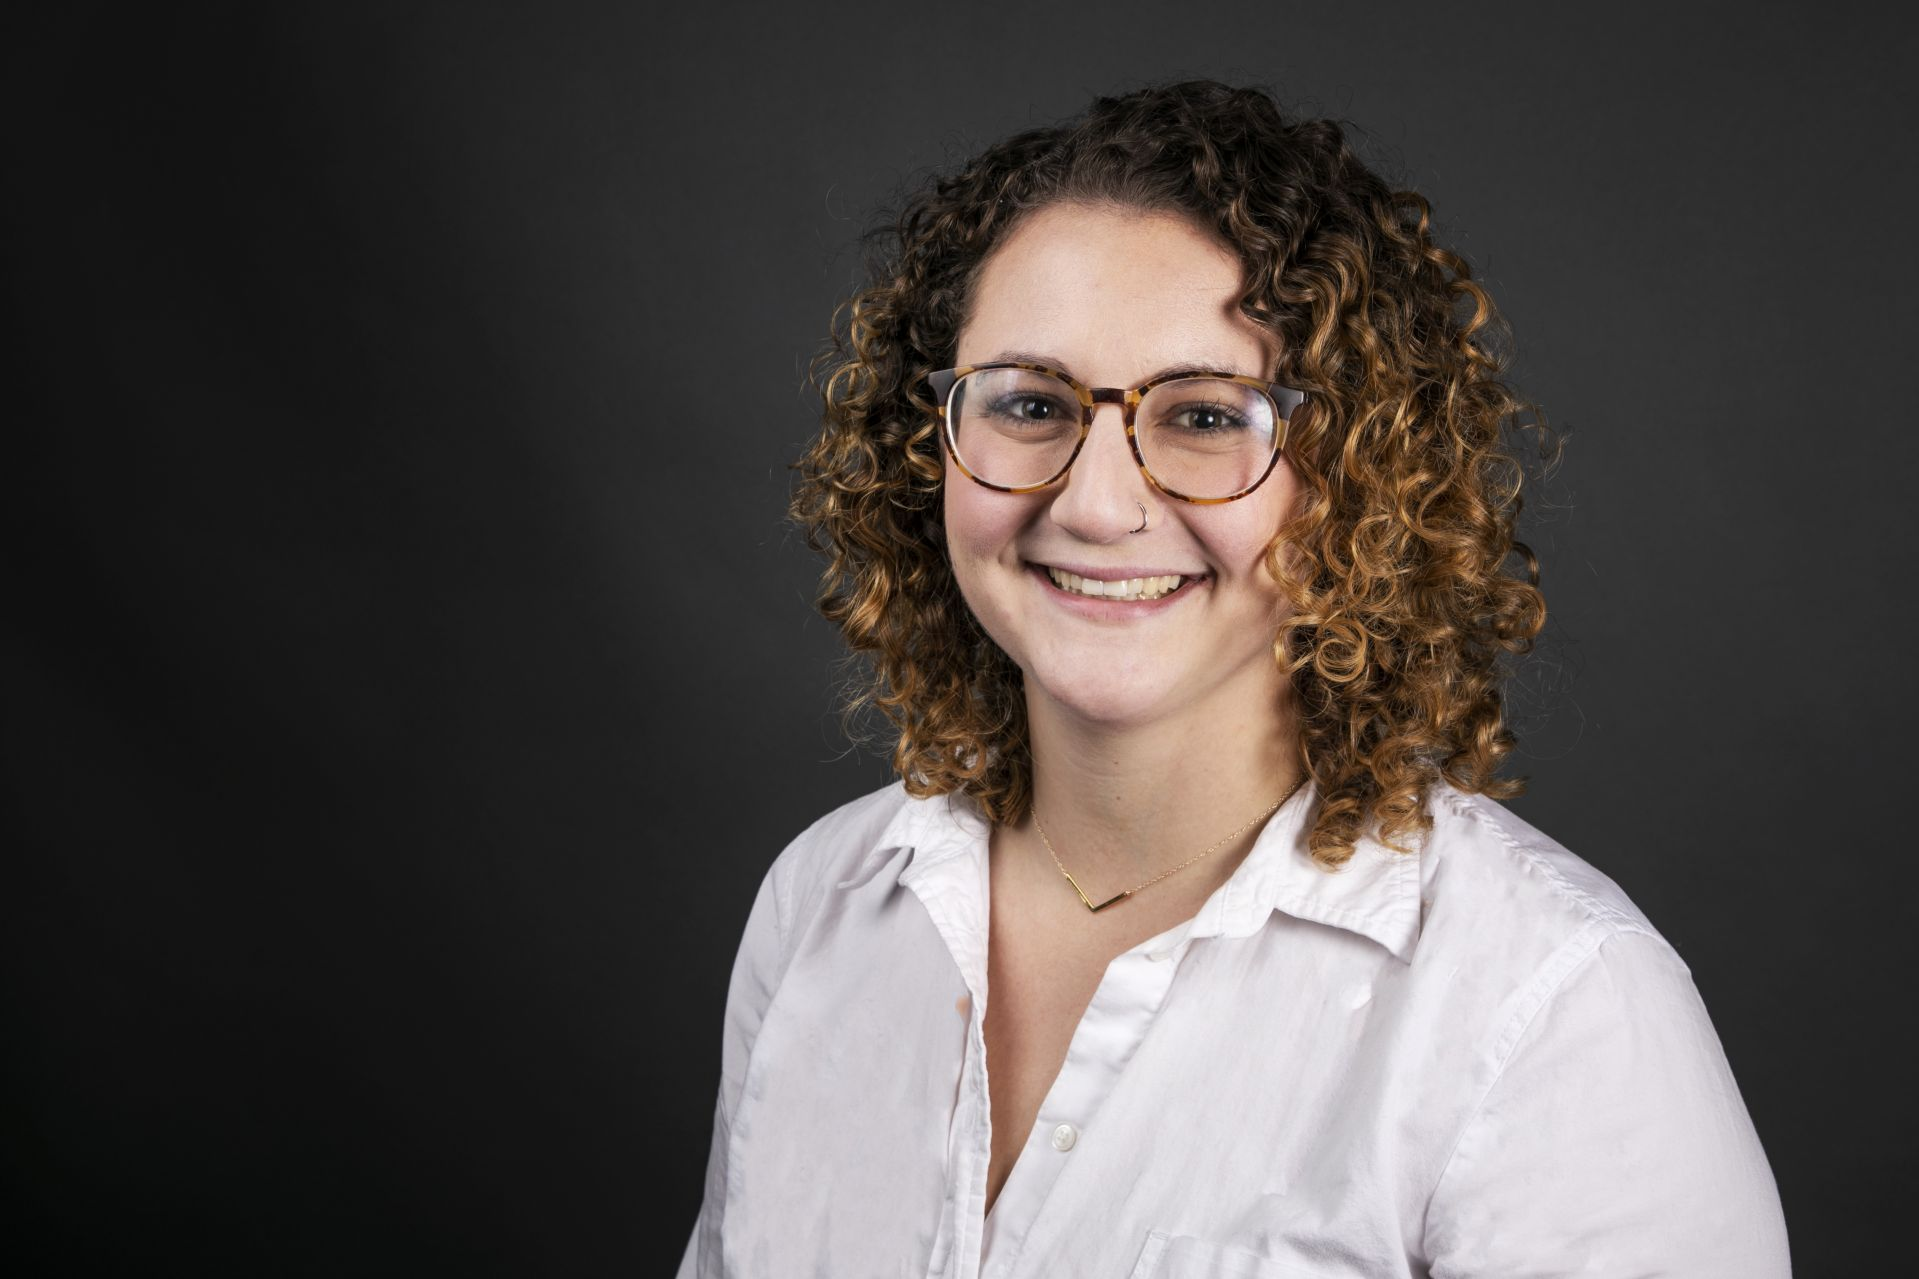 Melnick, Marisa W.Pronouns:she/her/hersmmelnick@bates.eduCoordinator of Outdoor Education and Programs Student Affairs 207-786-6305 Chase Hall